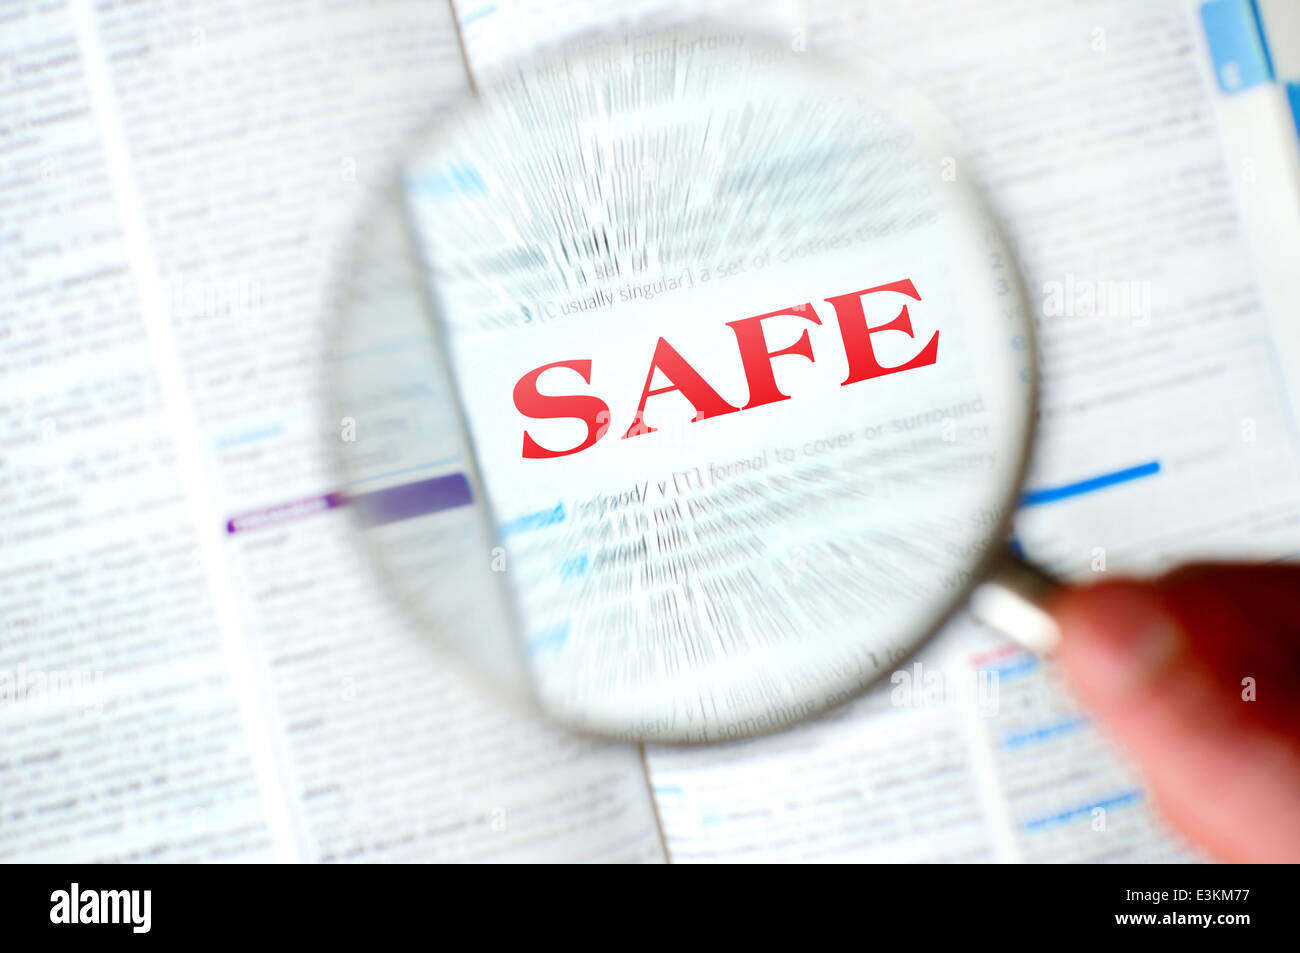 Magnifying safe word from book - Stock Image